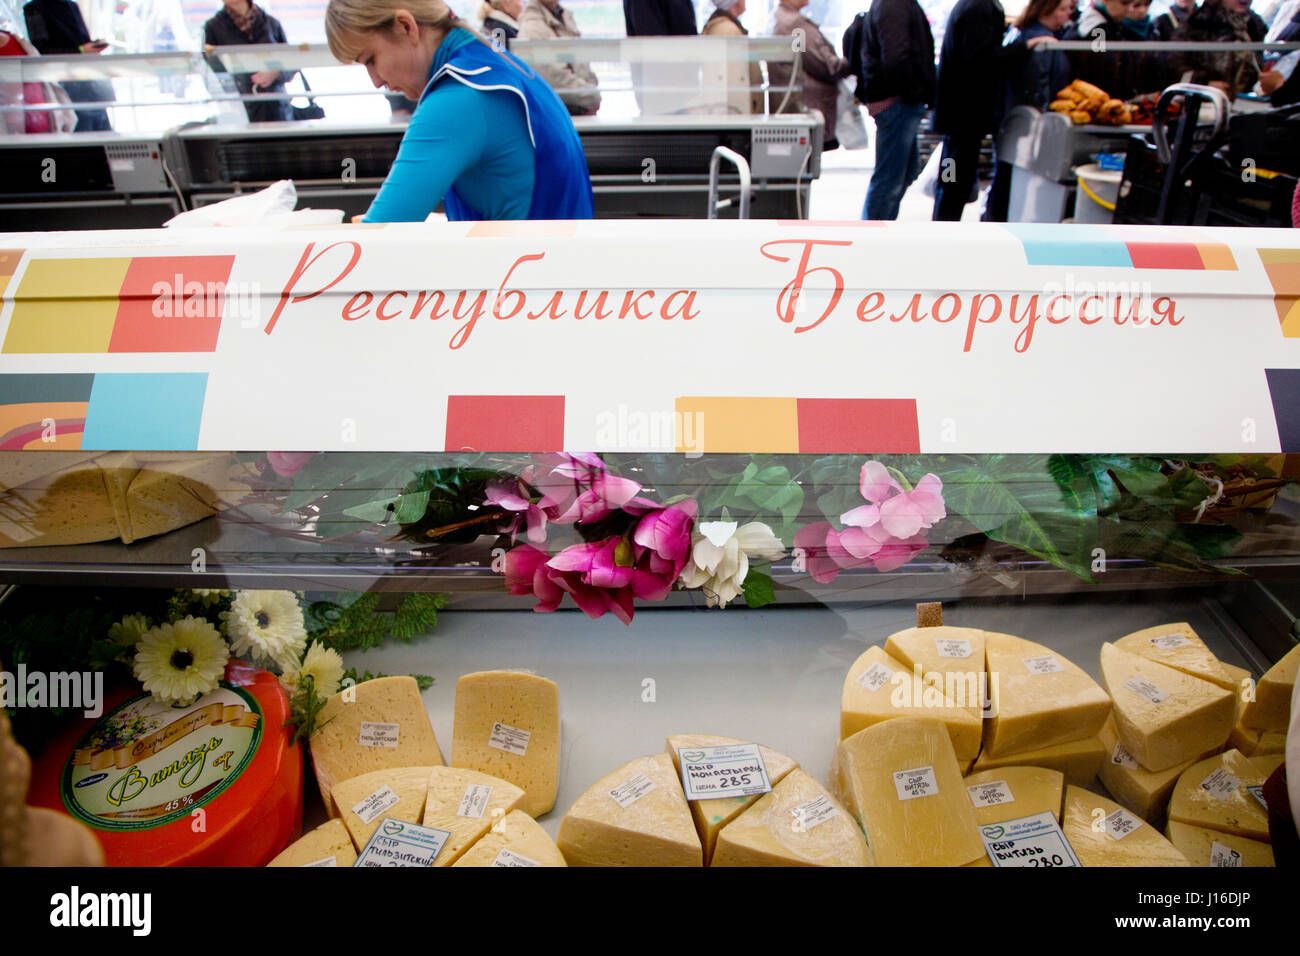 Sale of dairy products from the Republic of Belarus at the agricultural fair at VDNH in Moscow, Russia - Stock Image